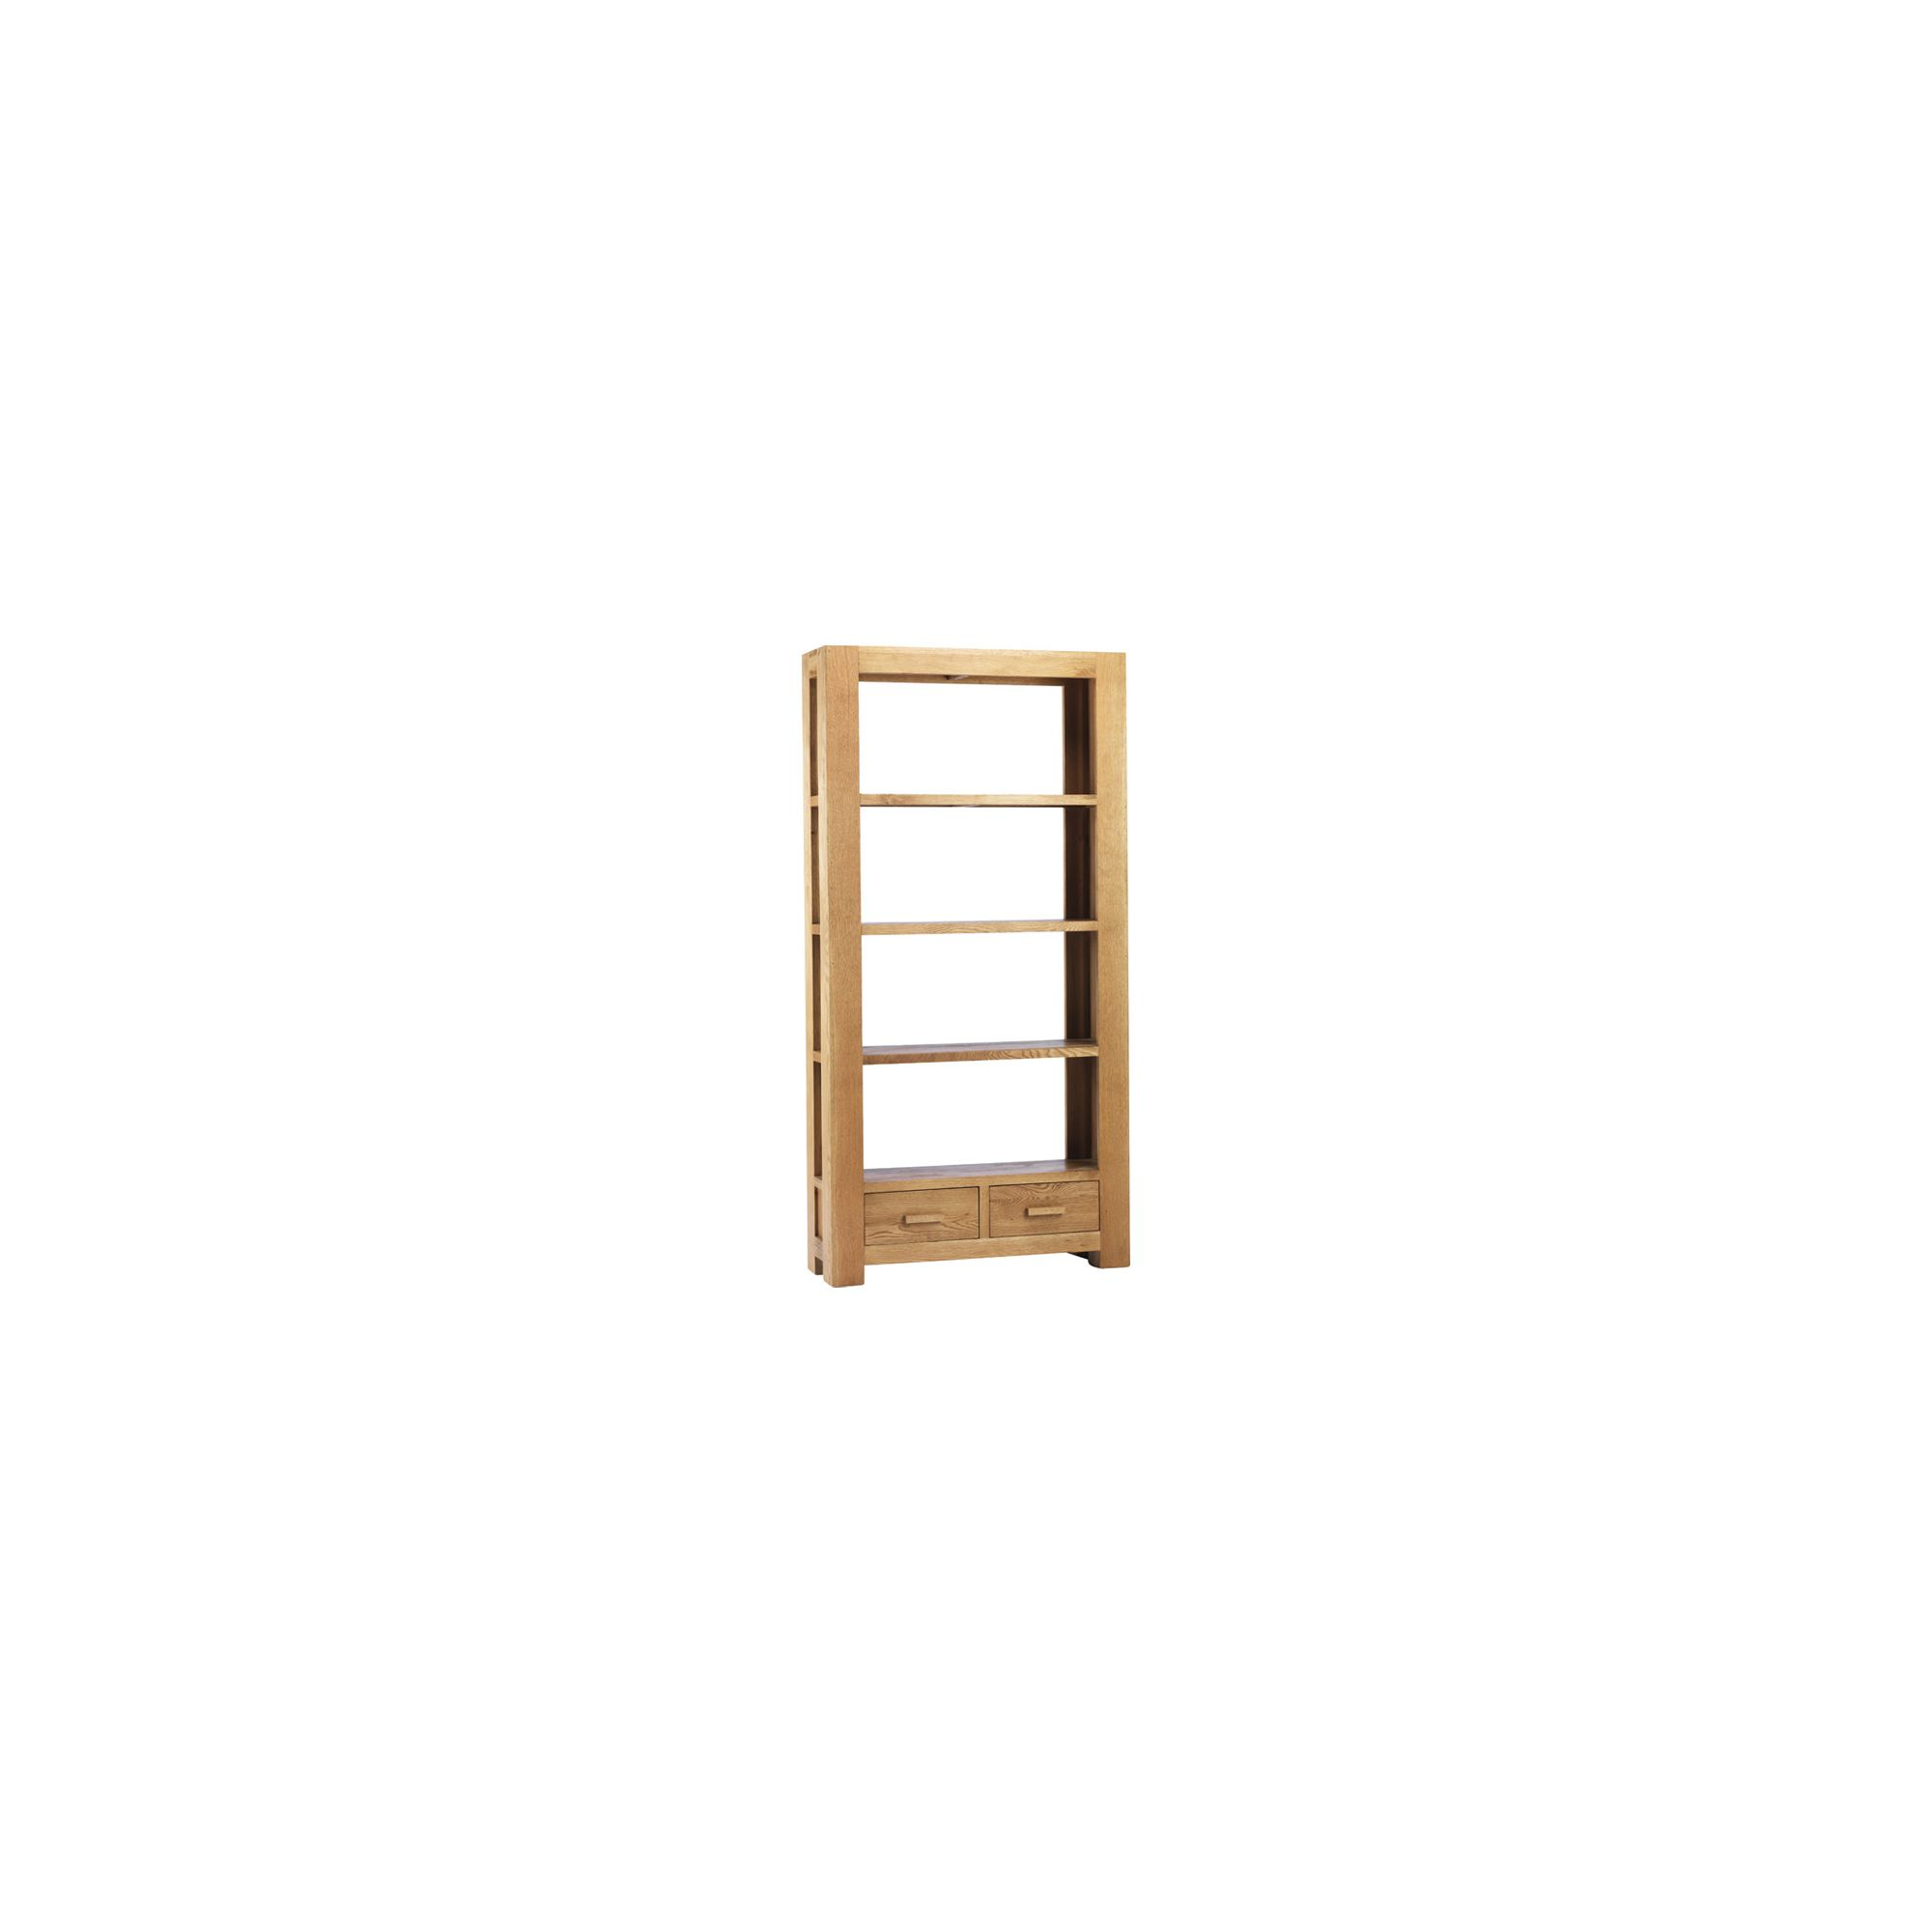 Thorndon Block Large Bookcase in Natural Matured Oak at Tesco Direct